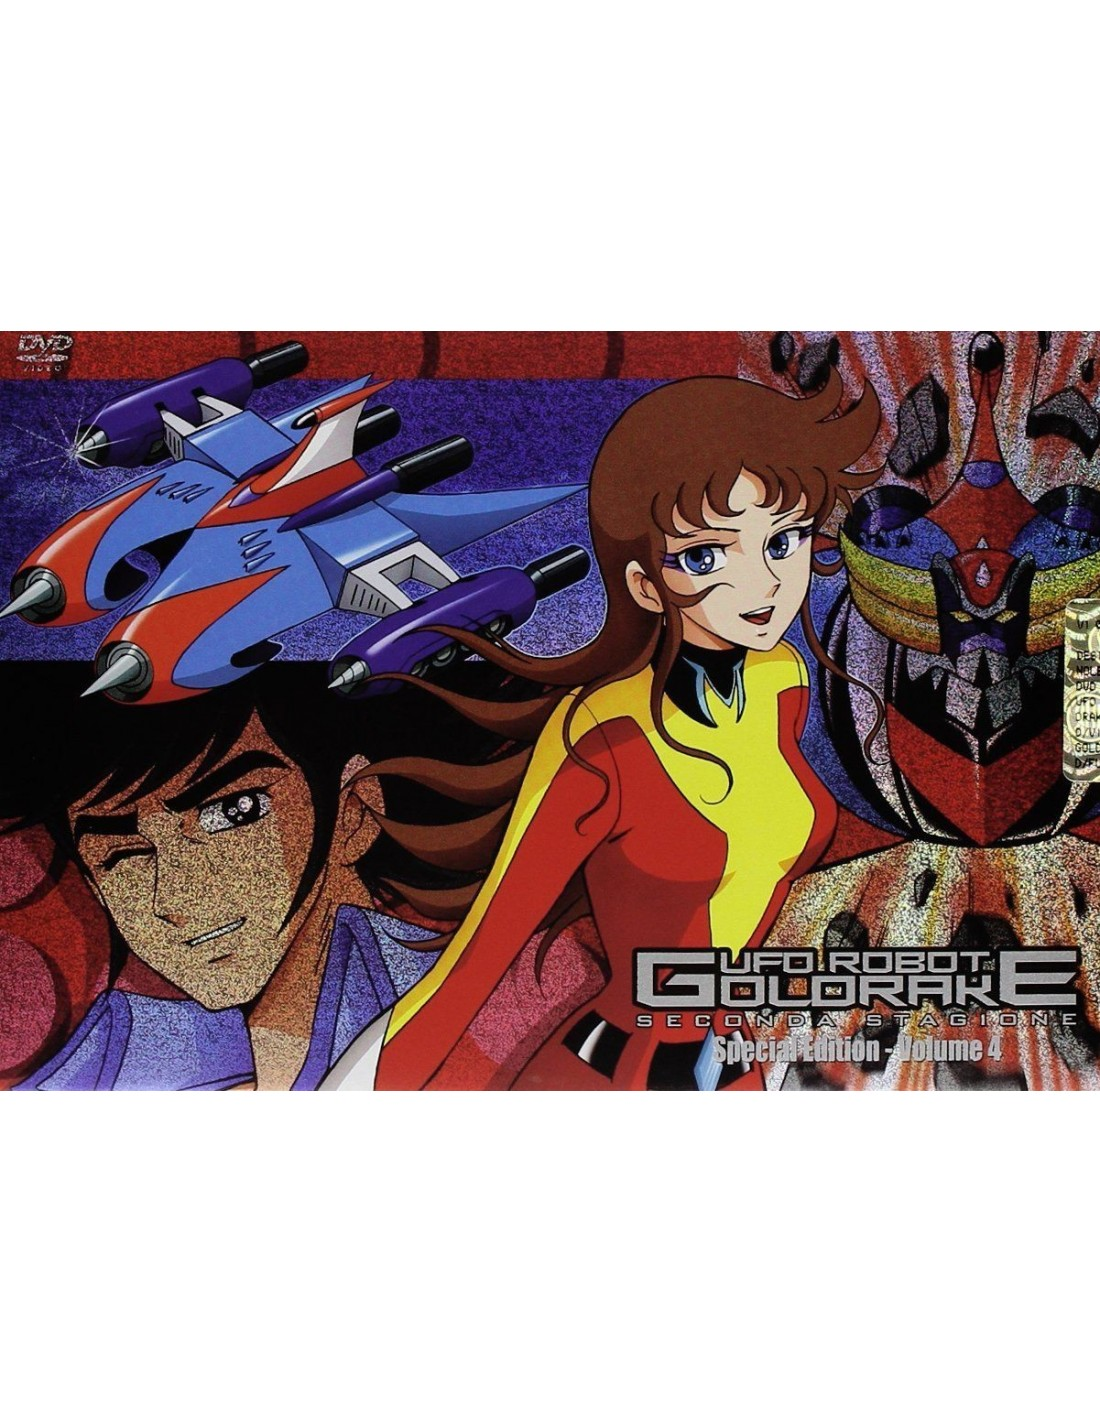 D visual dvd ufo robot goldrake stagione 1 volume 1 special edition